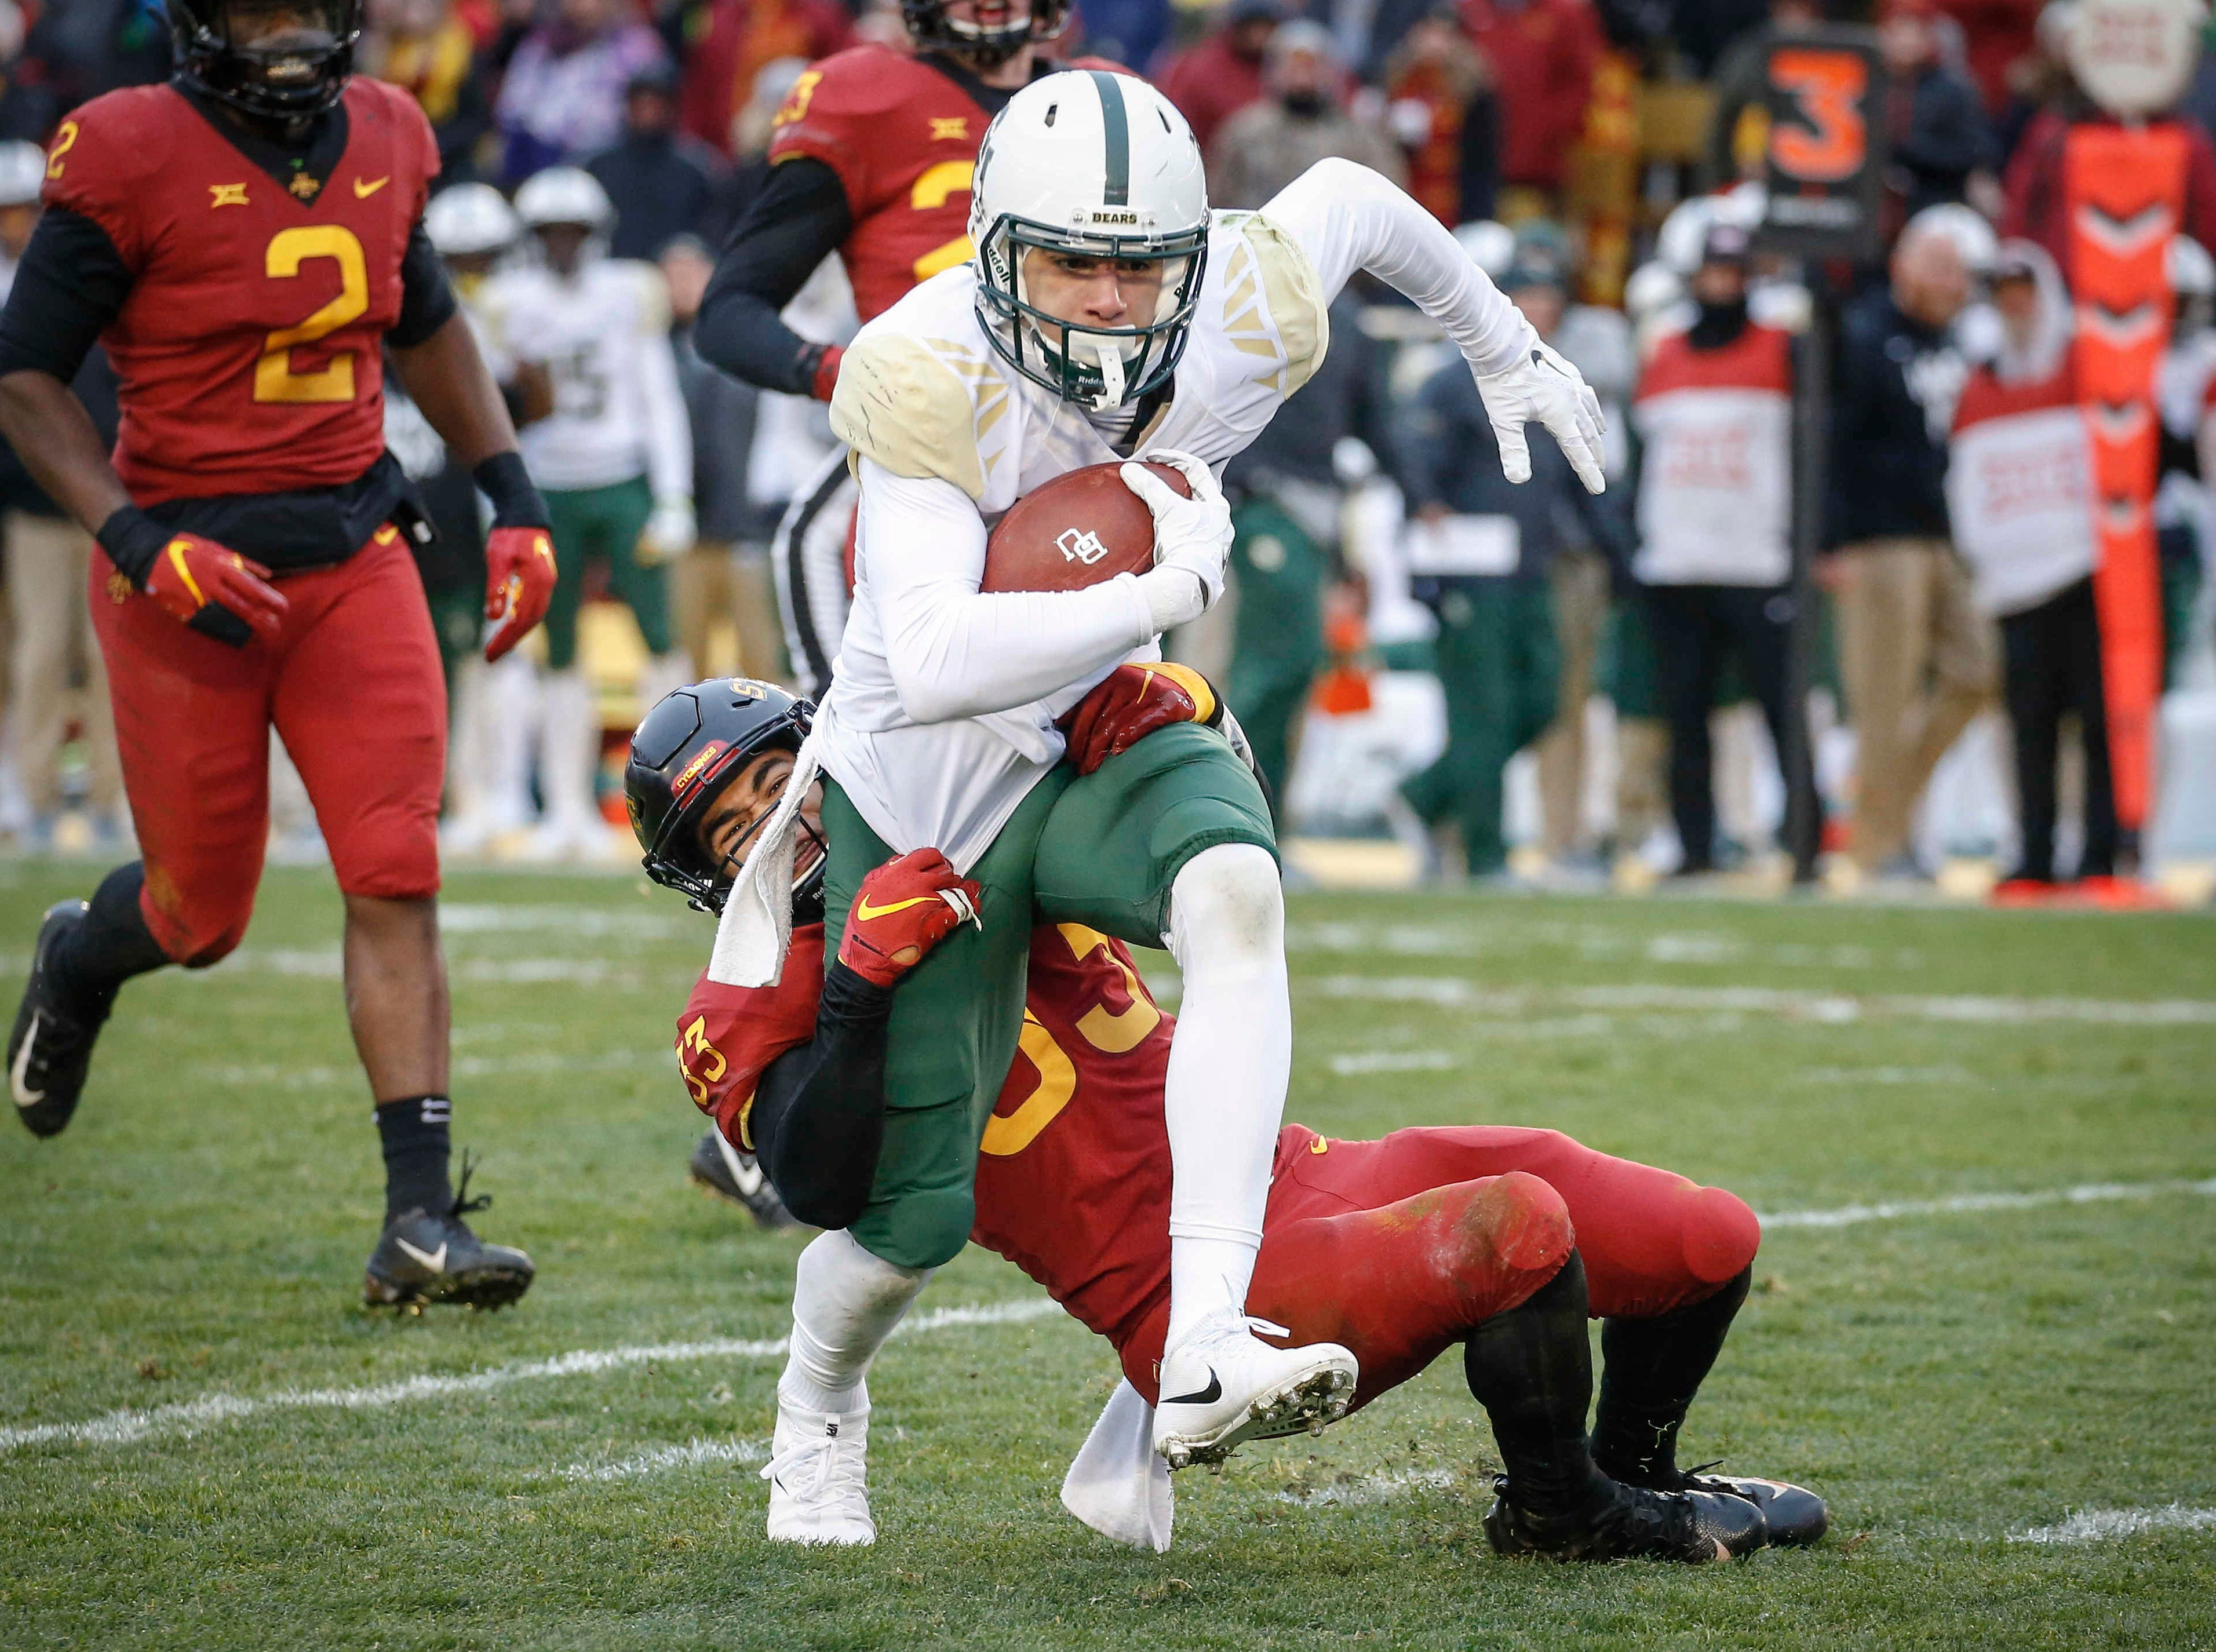 Baylor receiver Jalen Hurd is caught by Iowa State Braxton Lewis in the first quarter at Jack Trice Stadium in Ames on Saturday, Nov. 10, 2018.